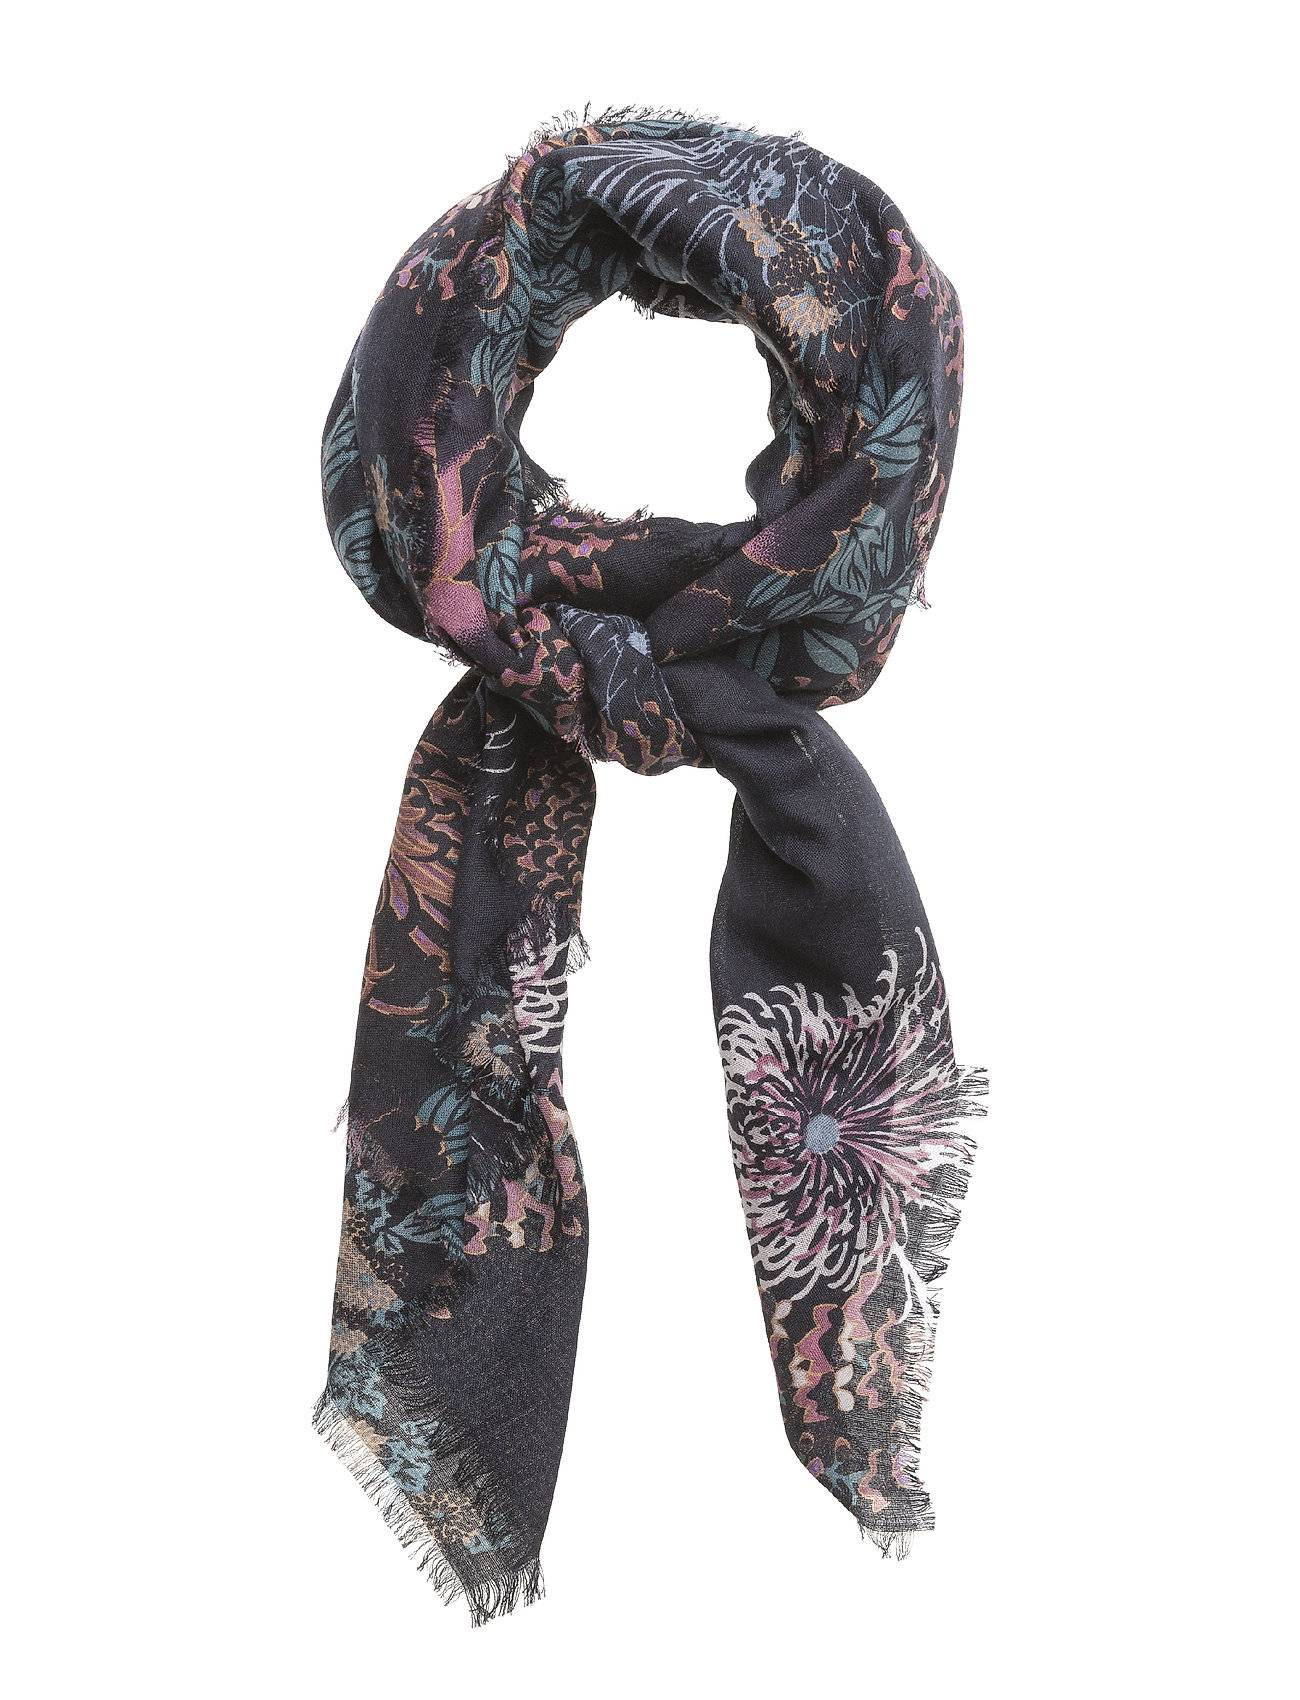 DAY et Day Deluxe Lupin Scarf